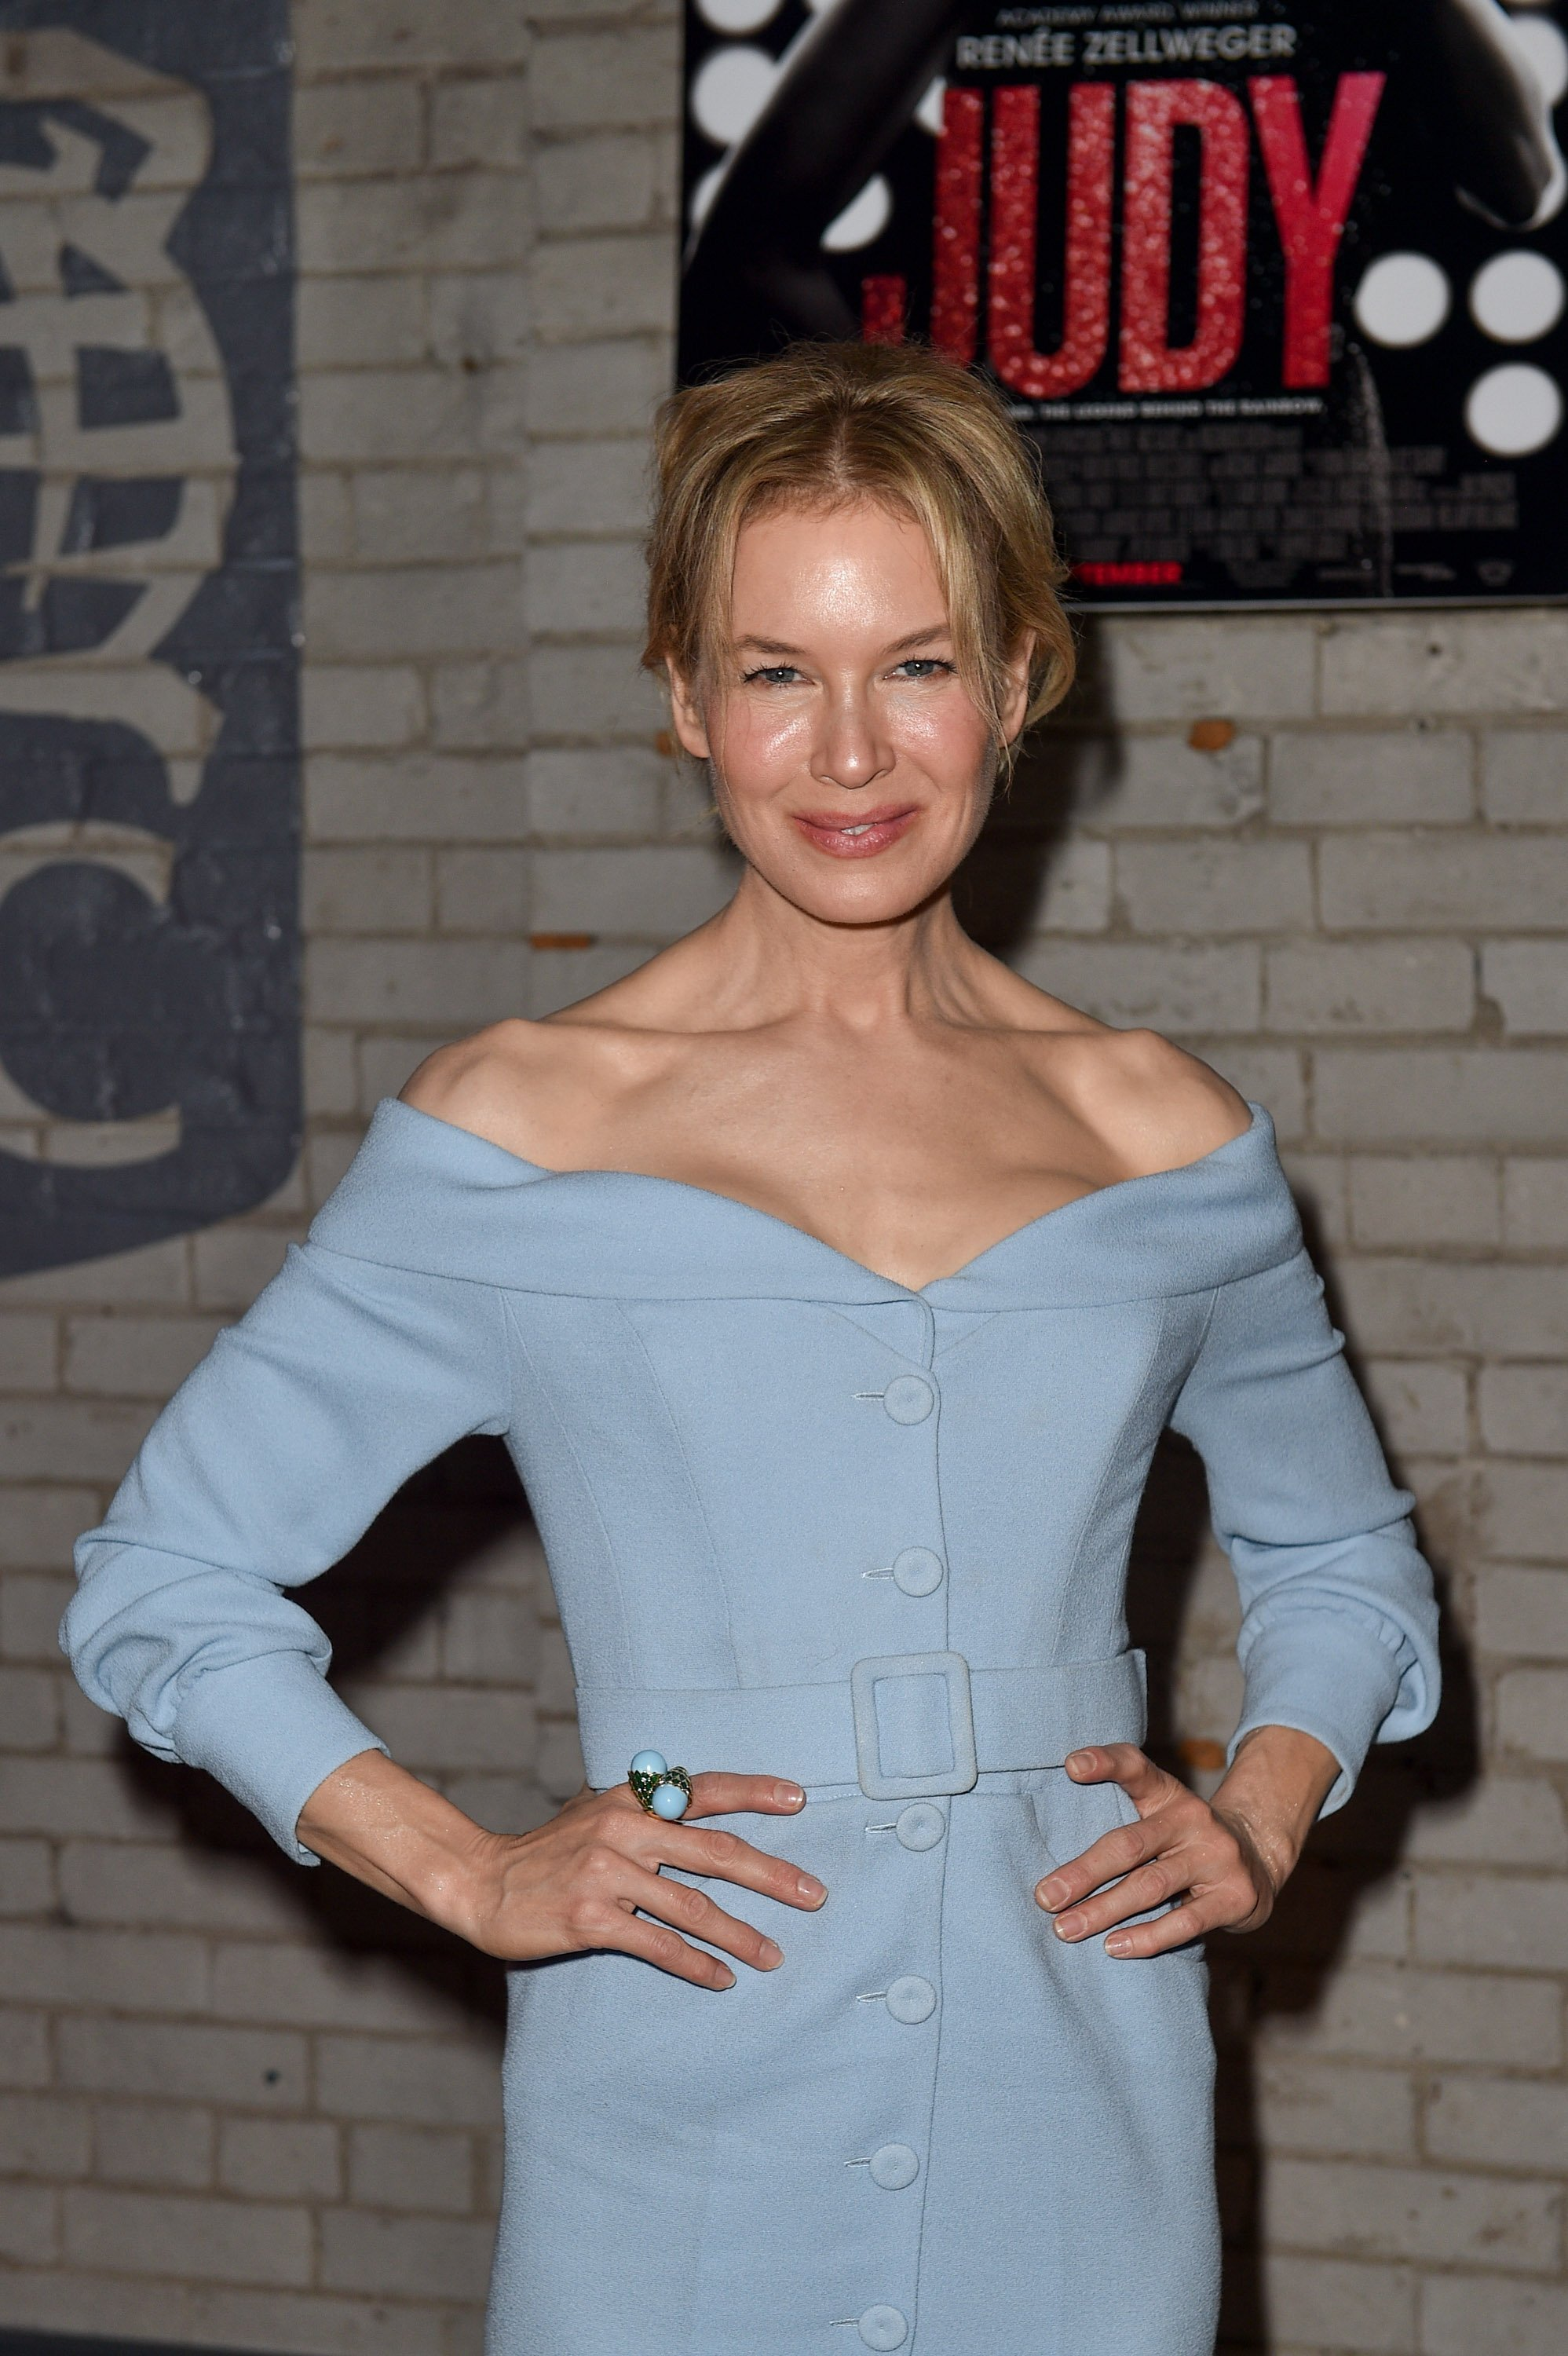 """Rene Zellweger attends the RBC Hosted """"Judy"""" Cocktail Party At RBC House Toronto Film Festival 2019 at RBC House on September 10, 2019, in Toronto, Canada. 